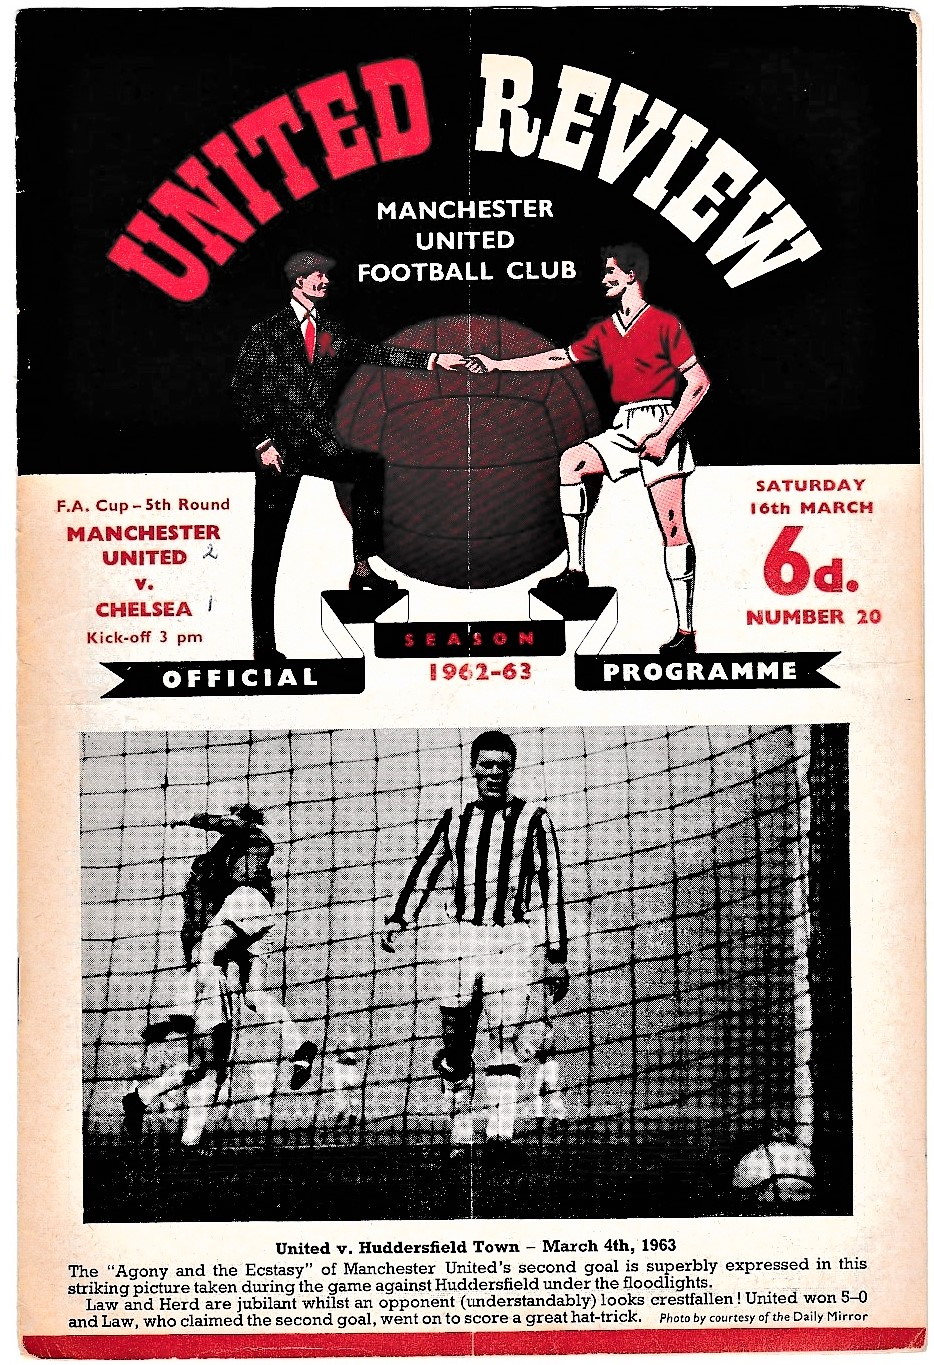 Manchester United v Chelsea 1963 March 16th League vertical crease score in pen front, score and